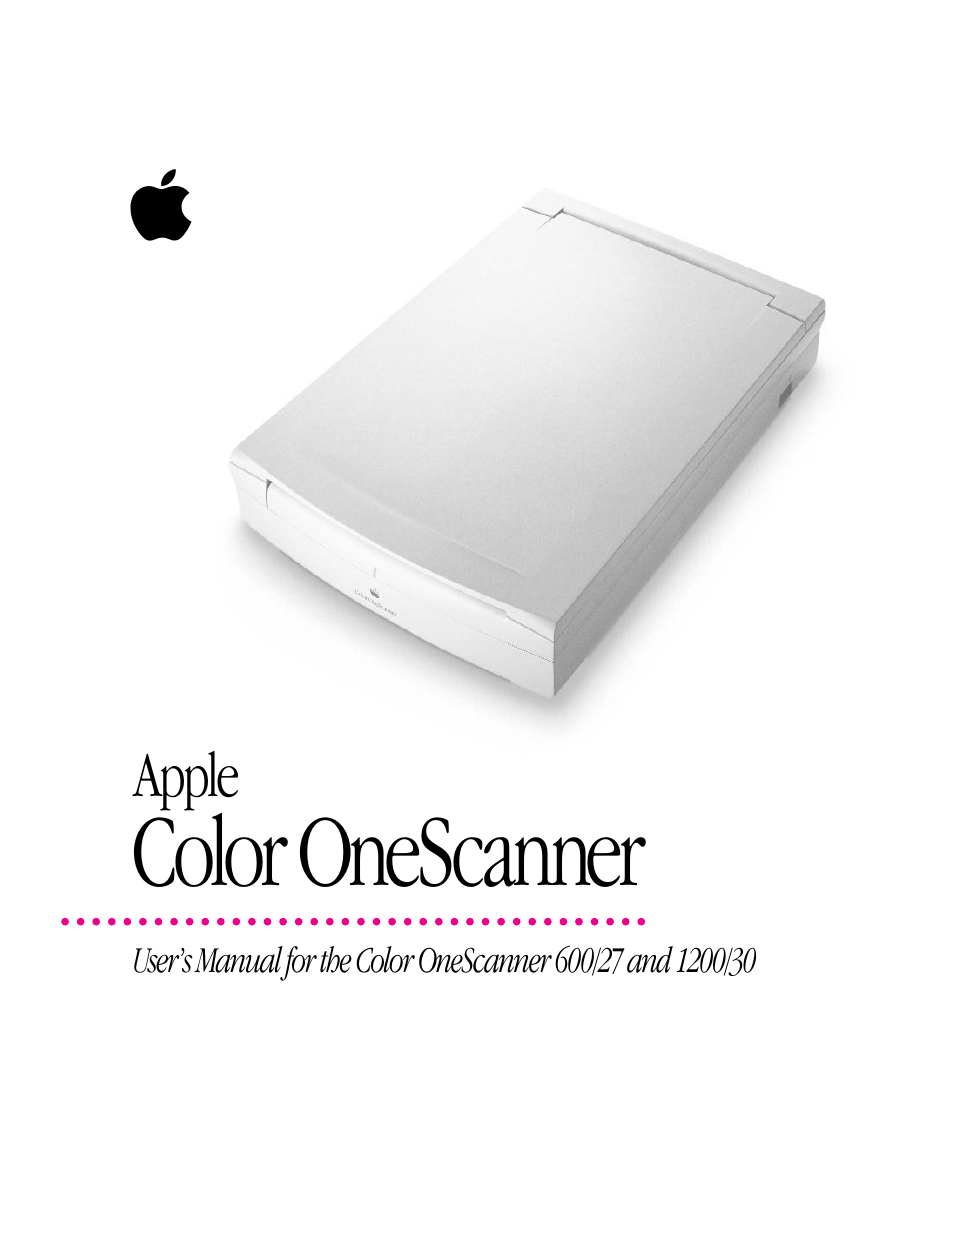 apple color onescanner 600 27 user manual 185 pages also for rh manualsdir com Apple iPad 2 Manual Apple Help iPad User Manual